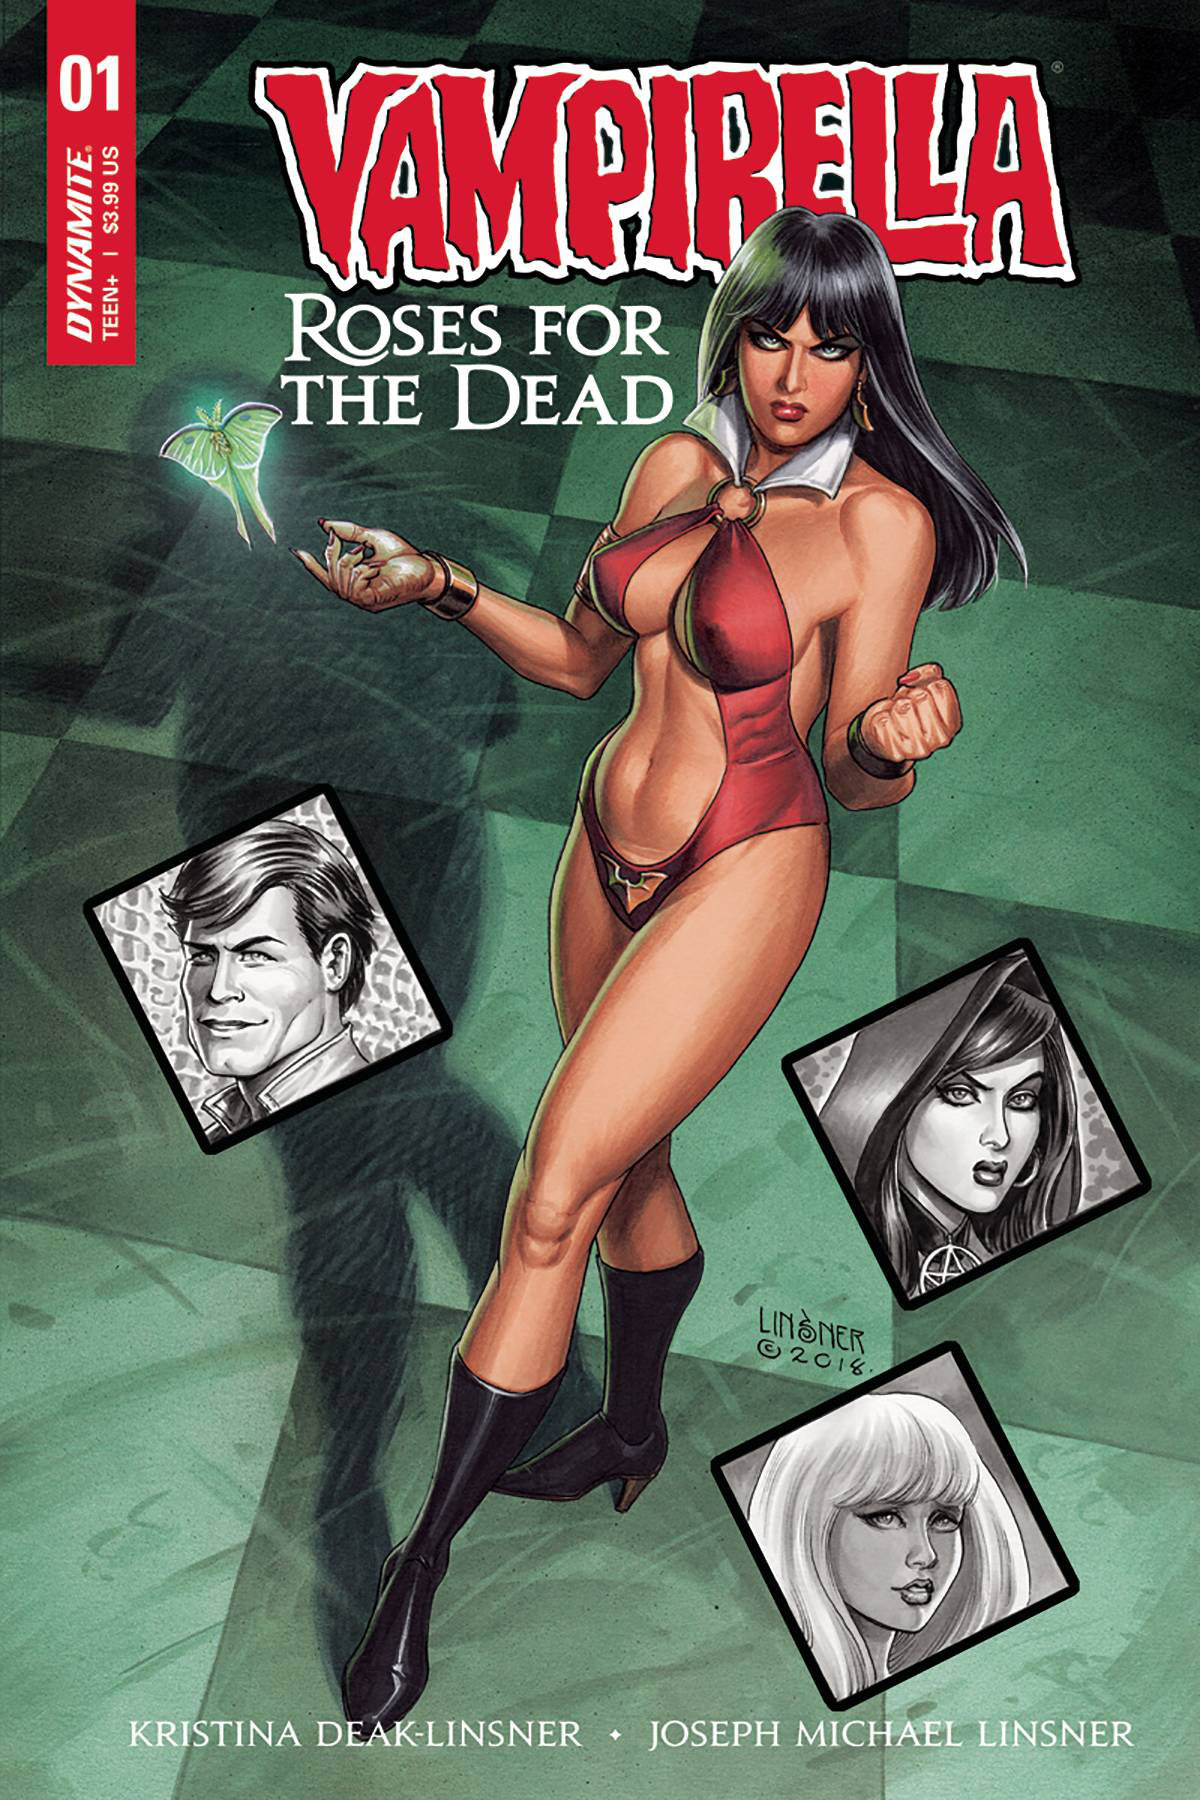 Vampirella Roses for the Dead, June 2018